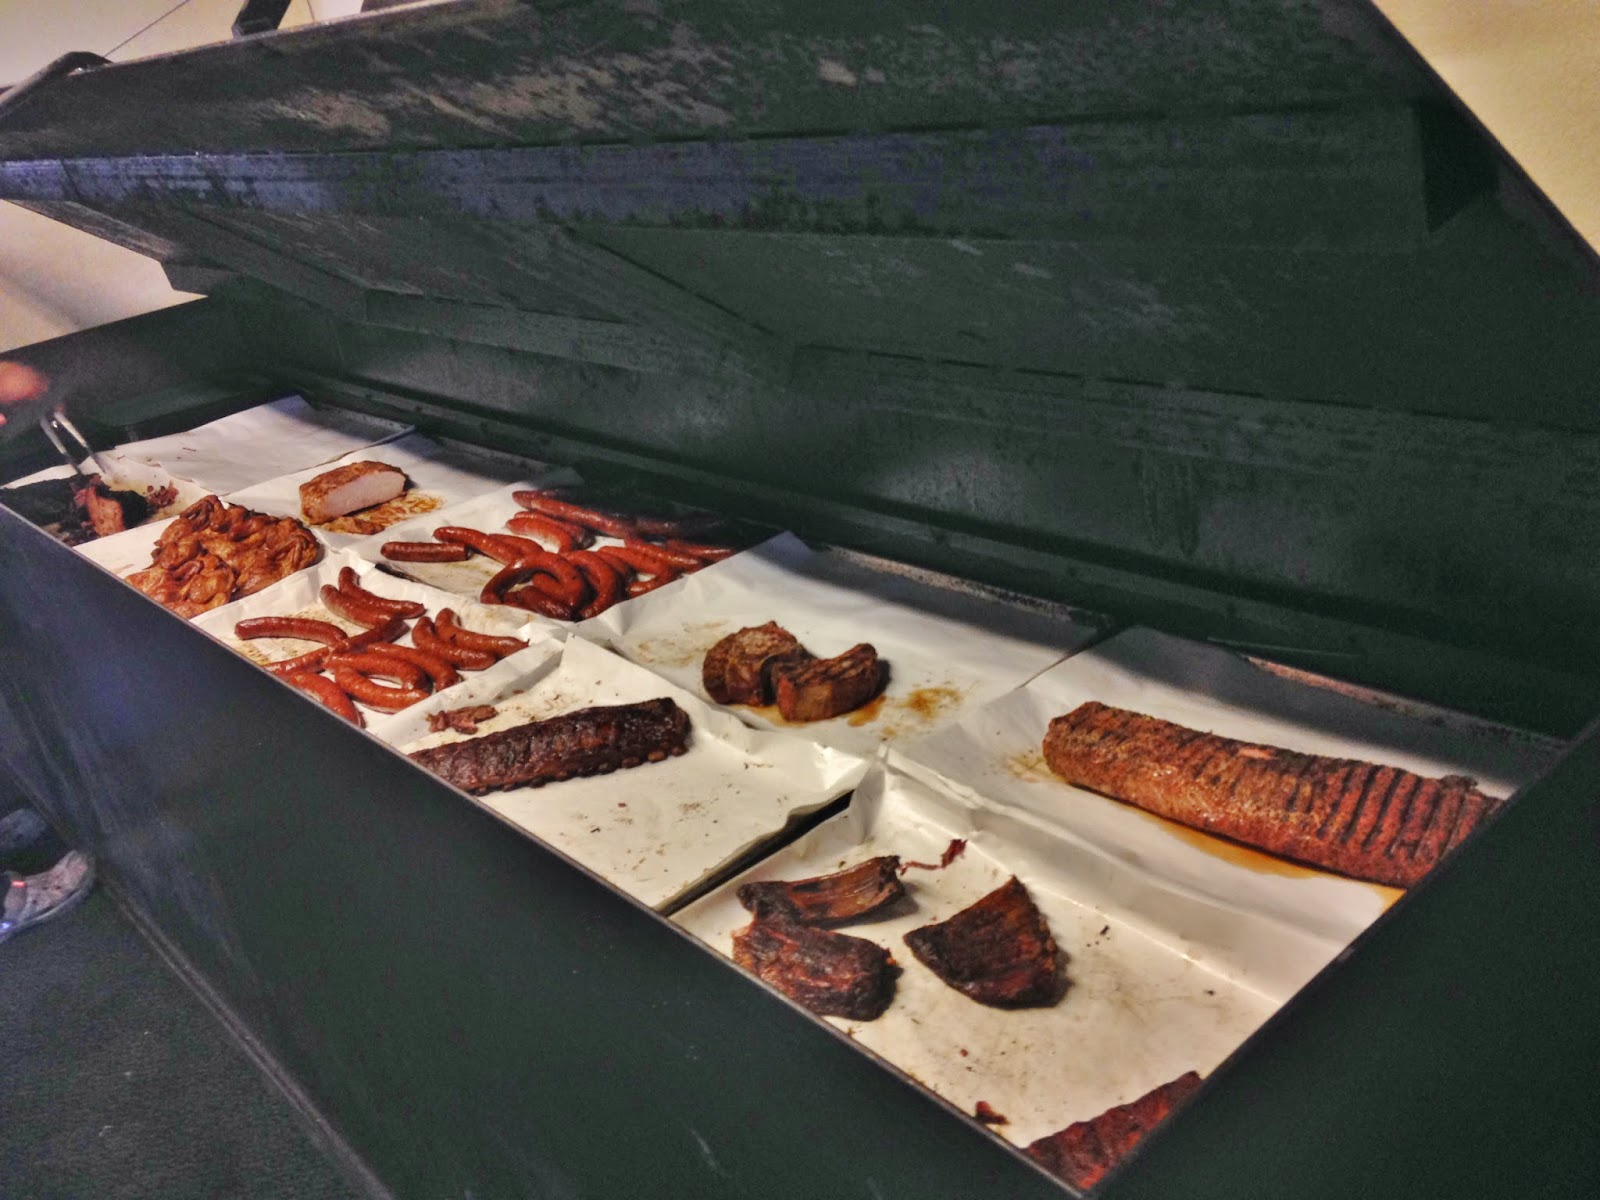 The spread of meats in Opie's pit